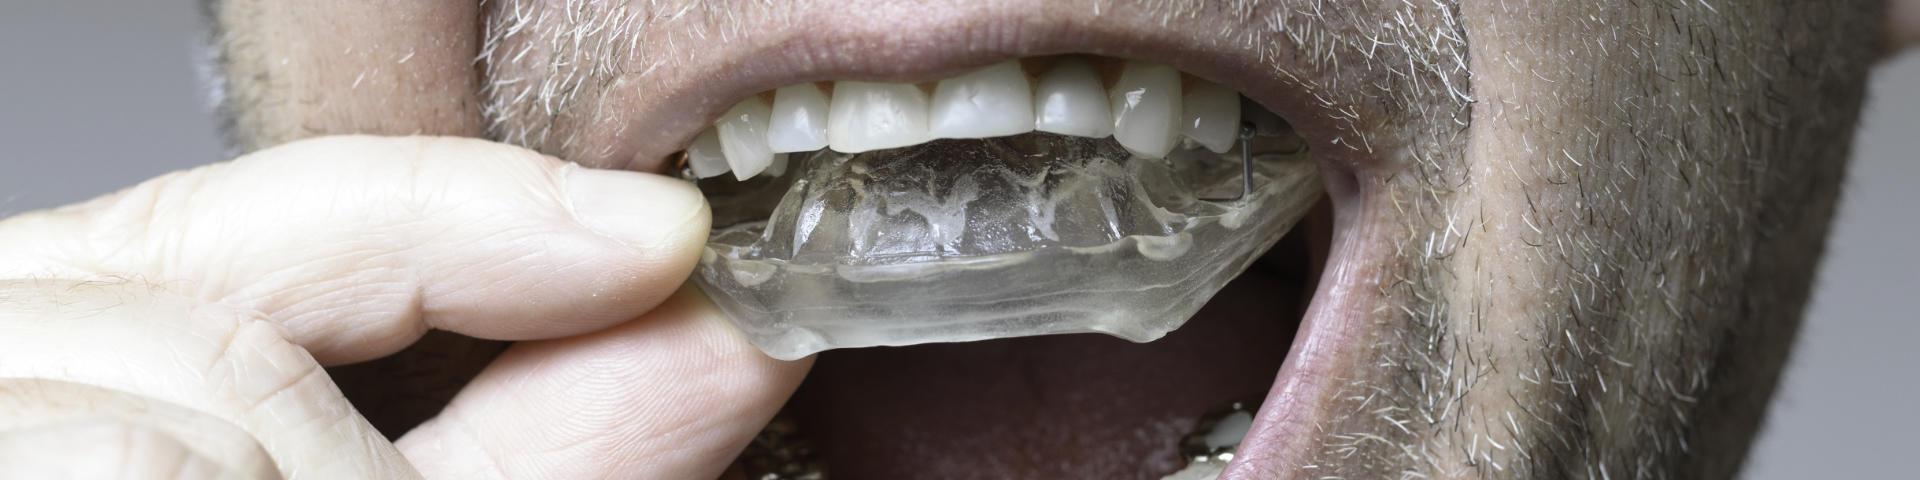 Man inserting night guards for bruxism into his mouth.